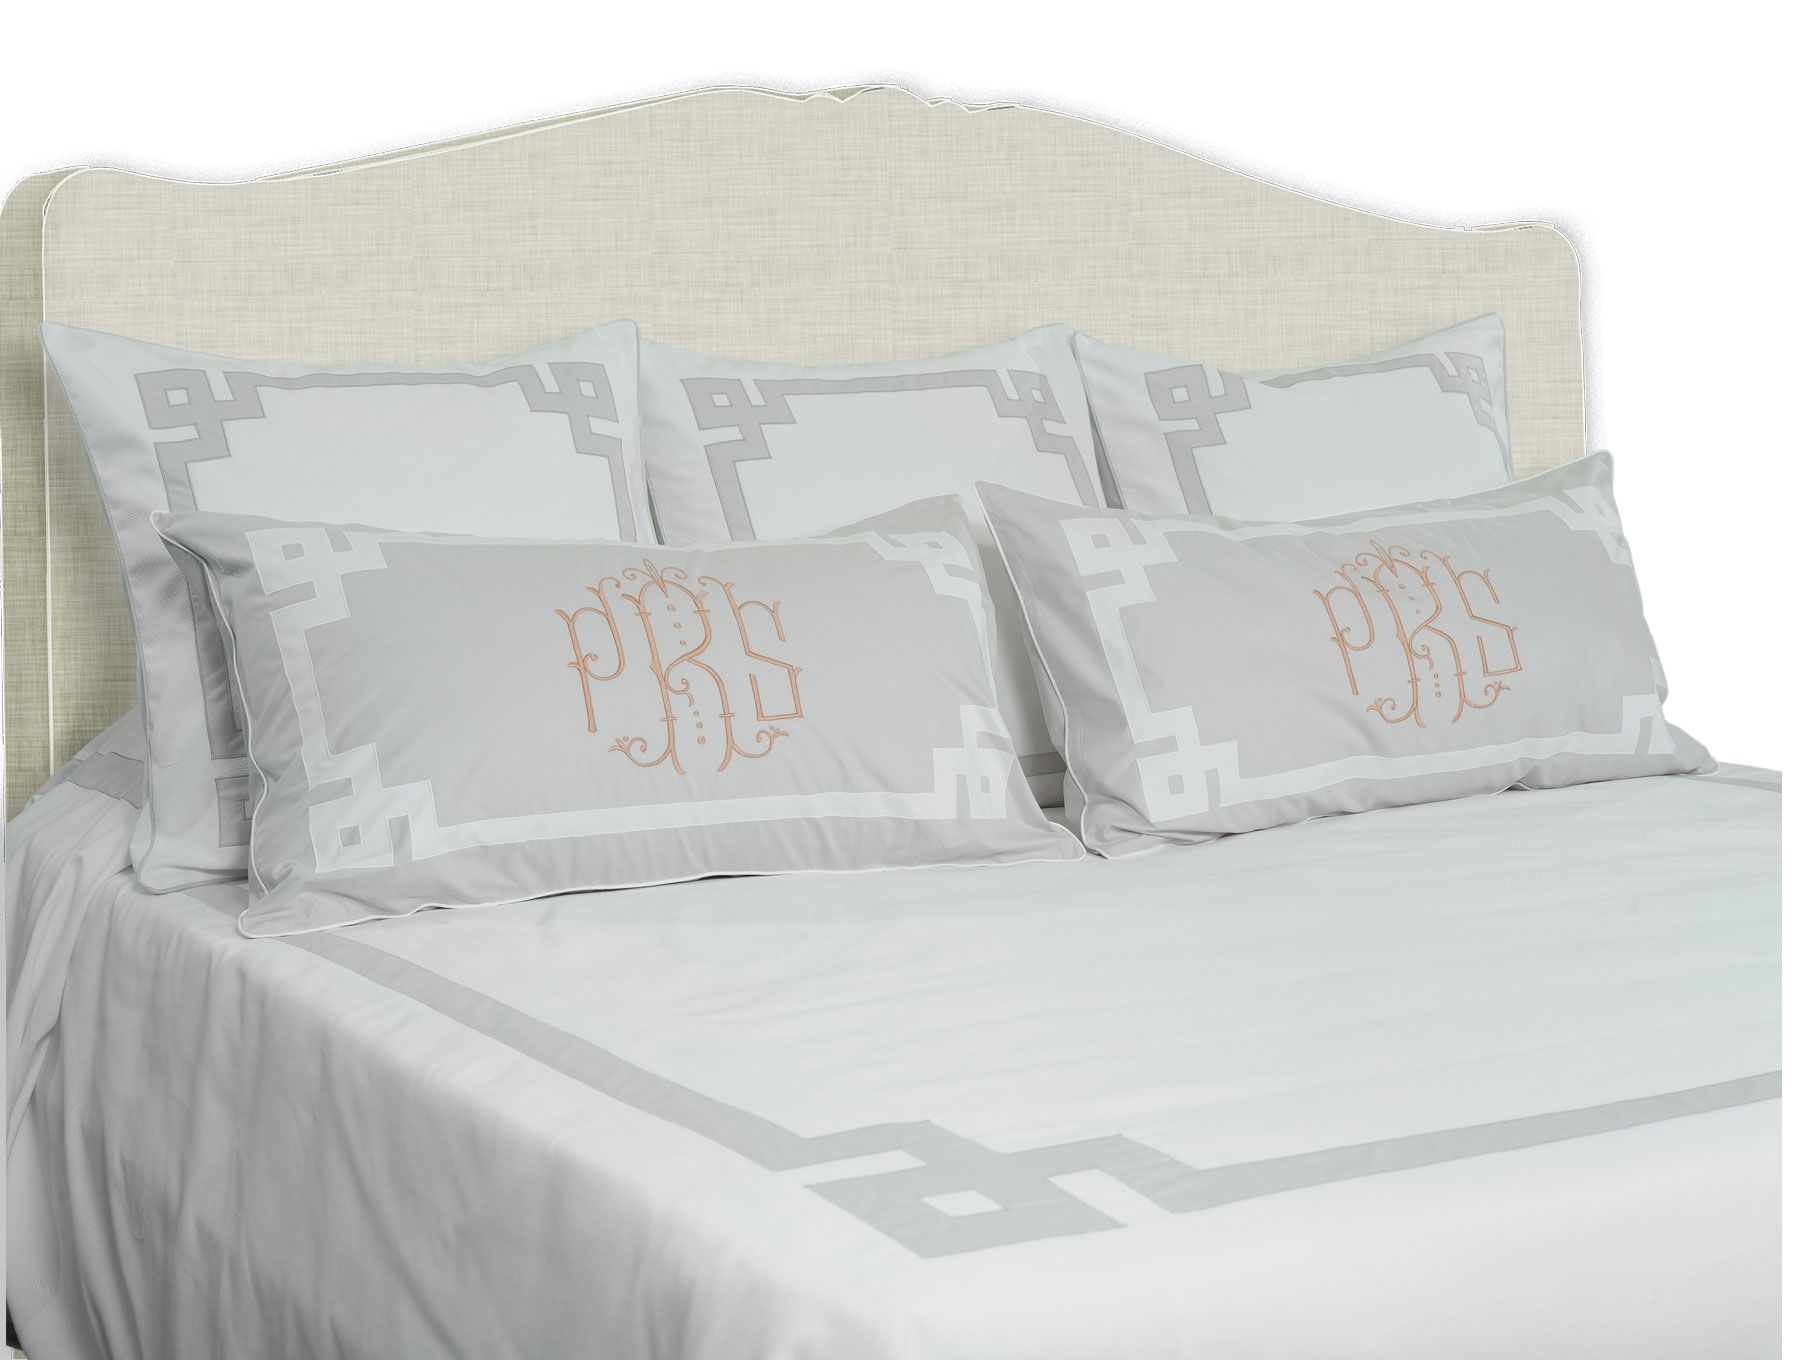 frances fretwork bed products leontine linens for the